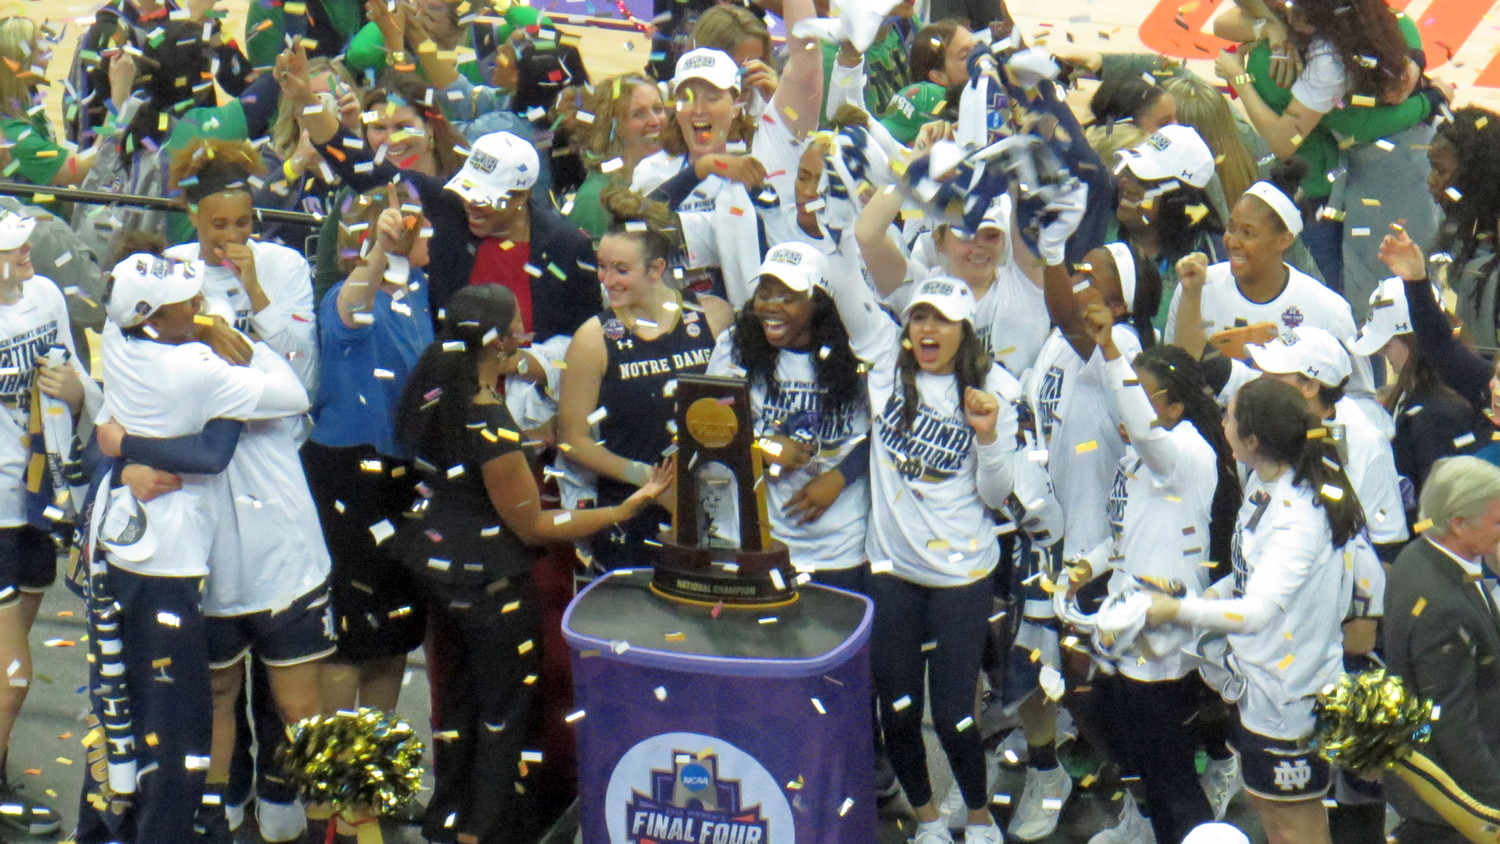 From Good Friday to Easter Sunday, Final Four ride for Notre Dame ends in championship win over Mississippi State, 61-58